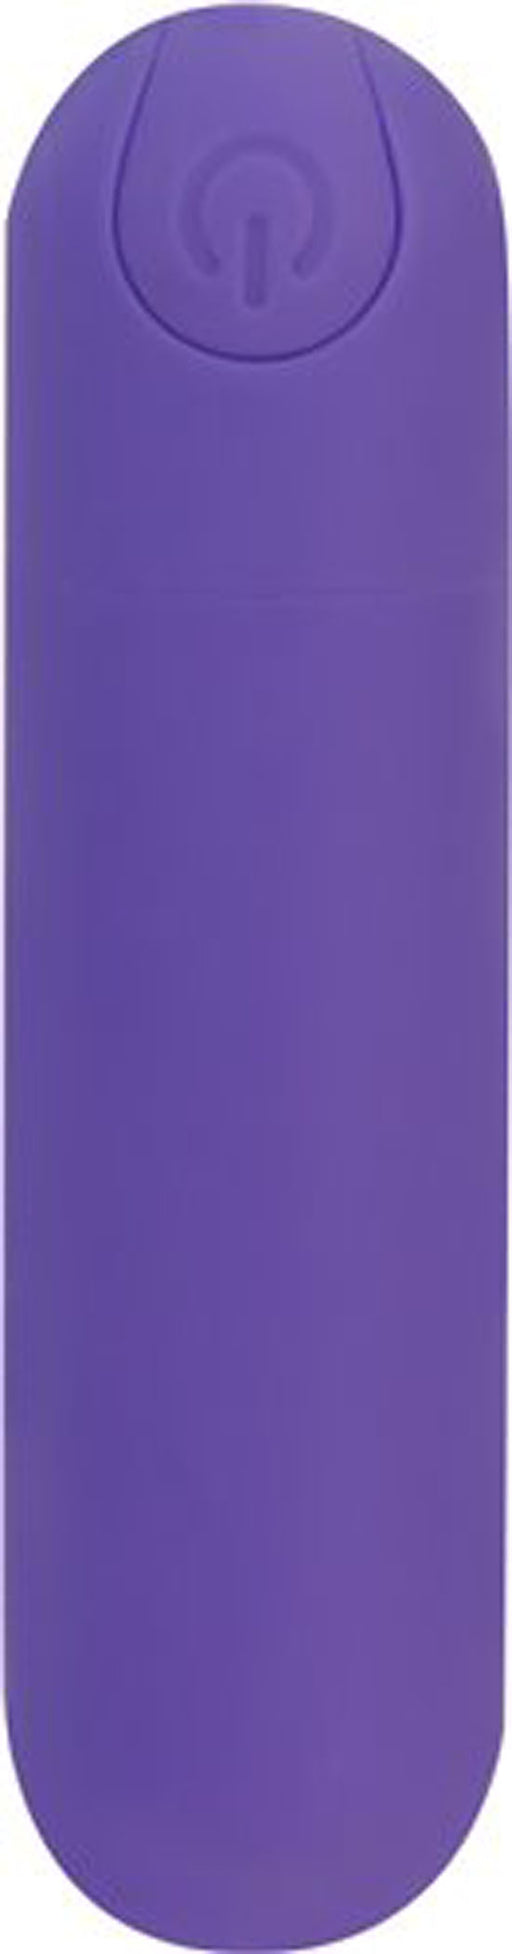 Power Bullet Essential 3.5 - Purple BMS5715-3